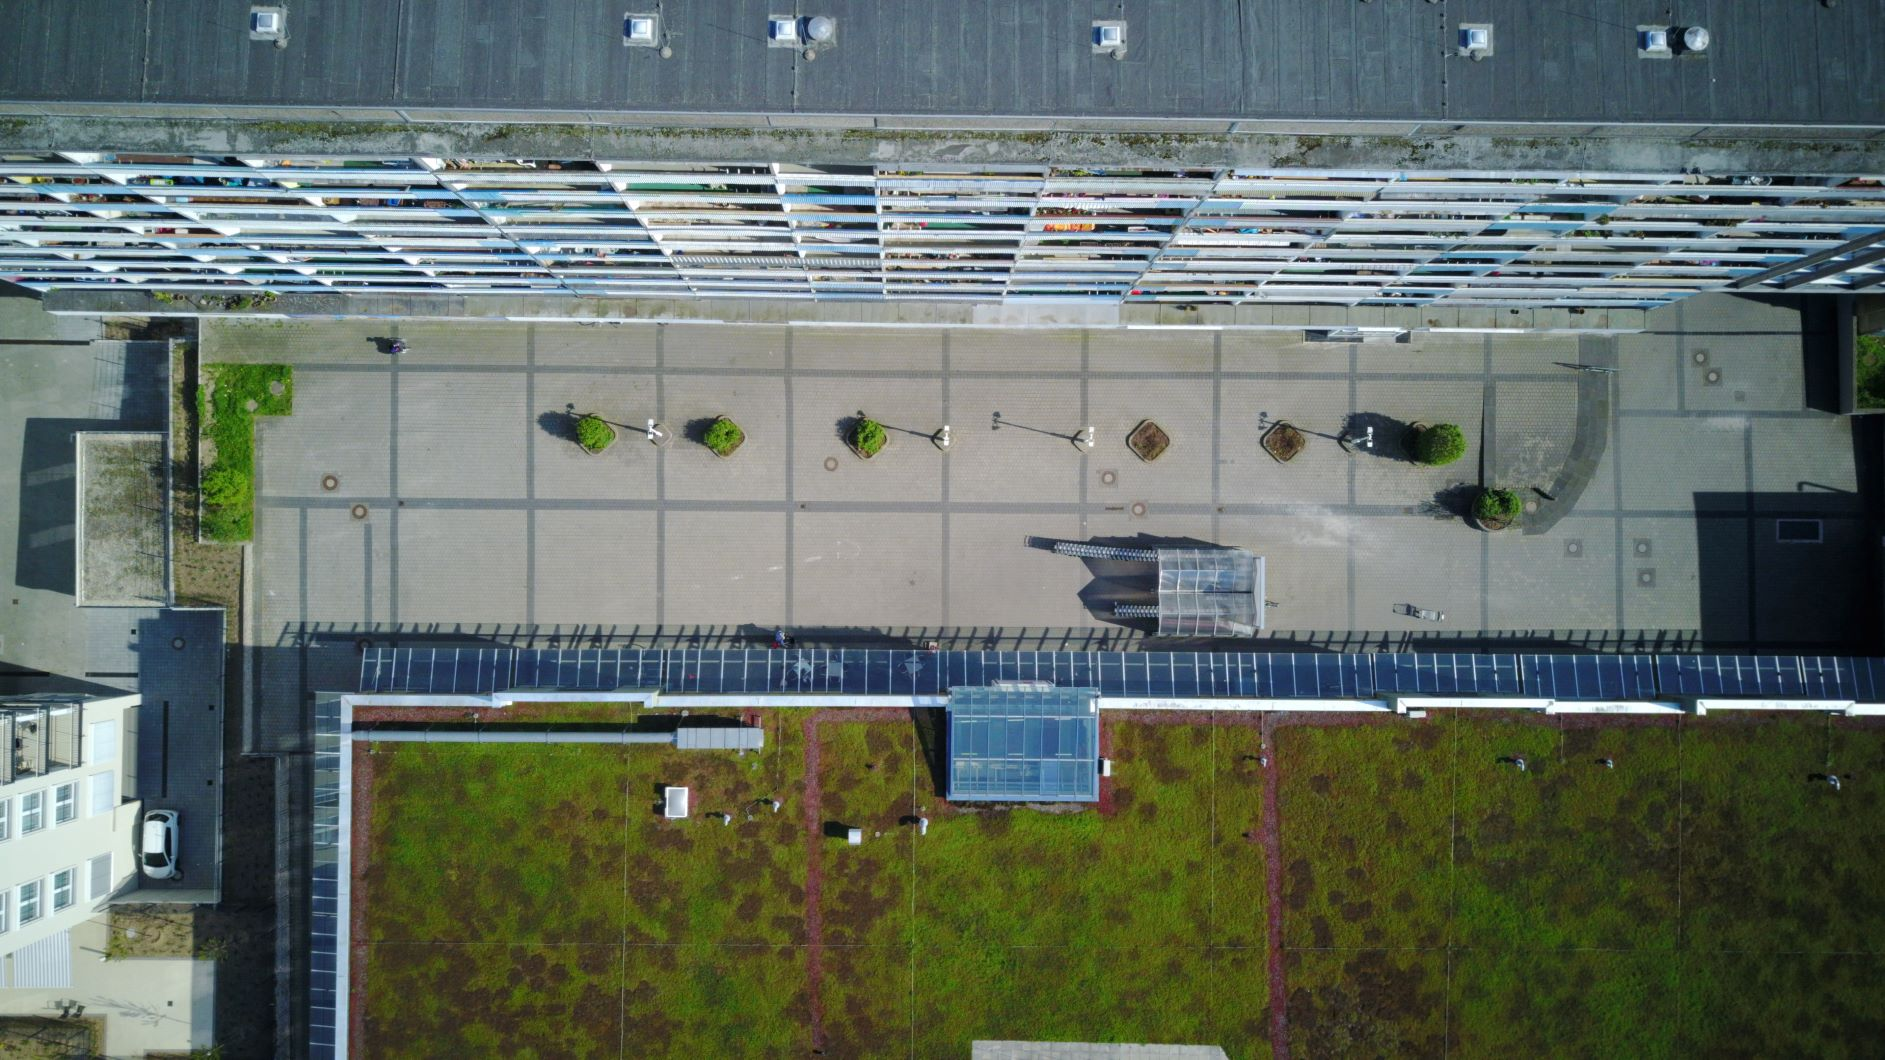 The Popo aerial view, Jena-Lobeda, Germany